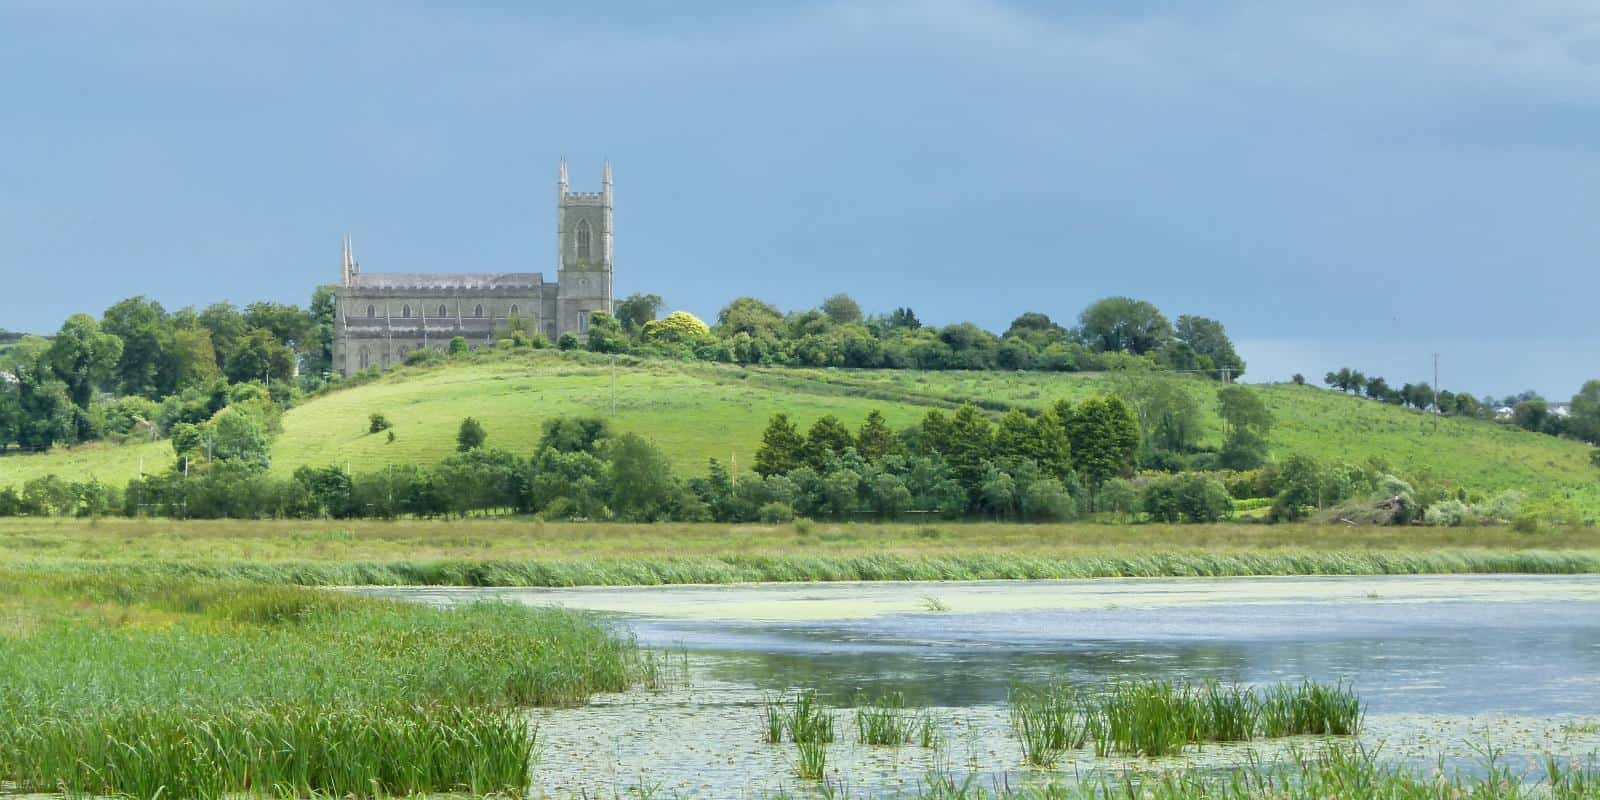 The view from Inch Abbey, across the River Quoile and towards Down Cathedral